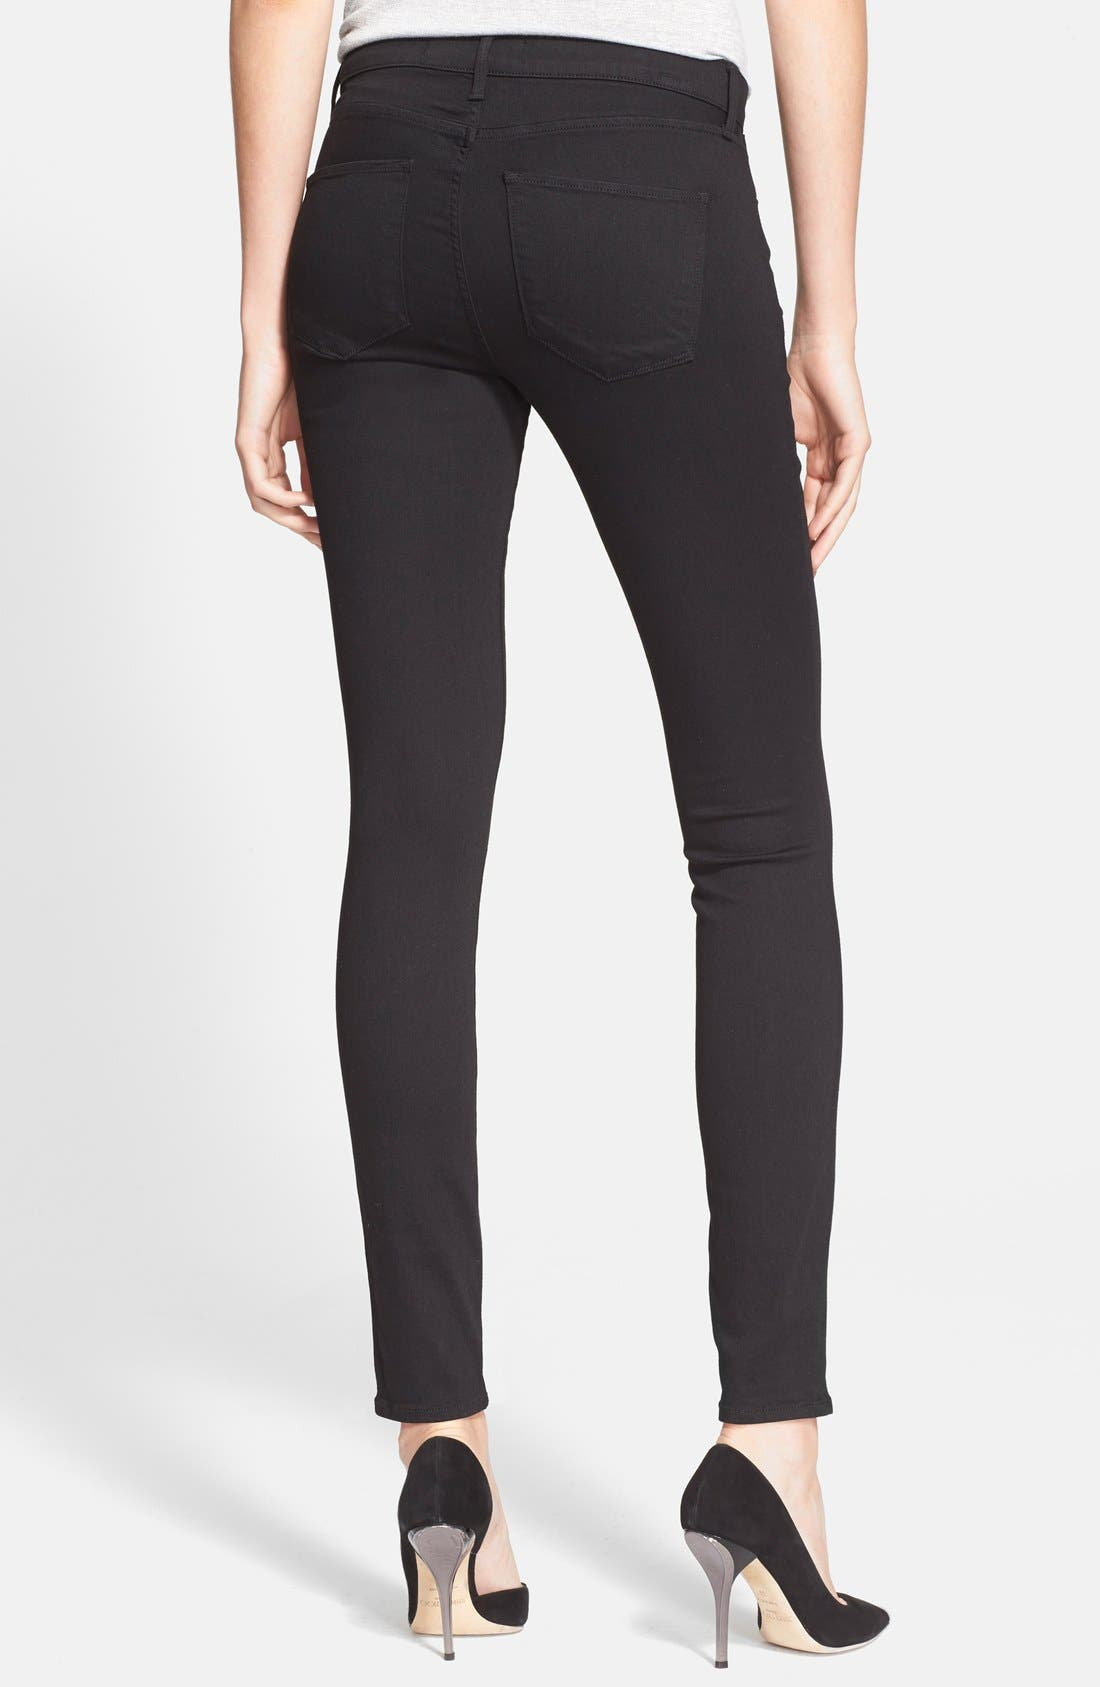 Alternate Image 2  - AYR 'The Skinny' Skinny Jeans (Jet Black)